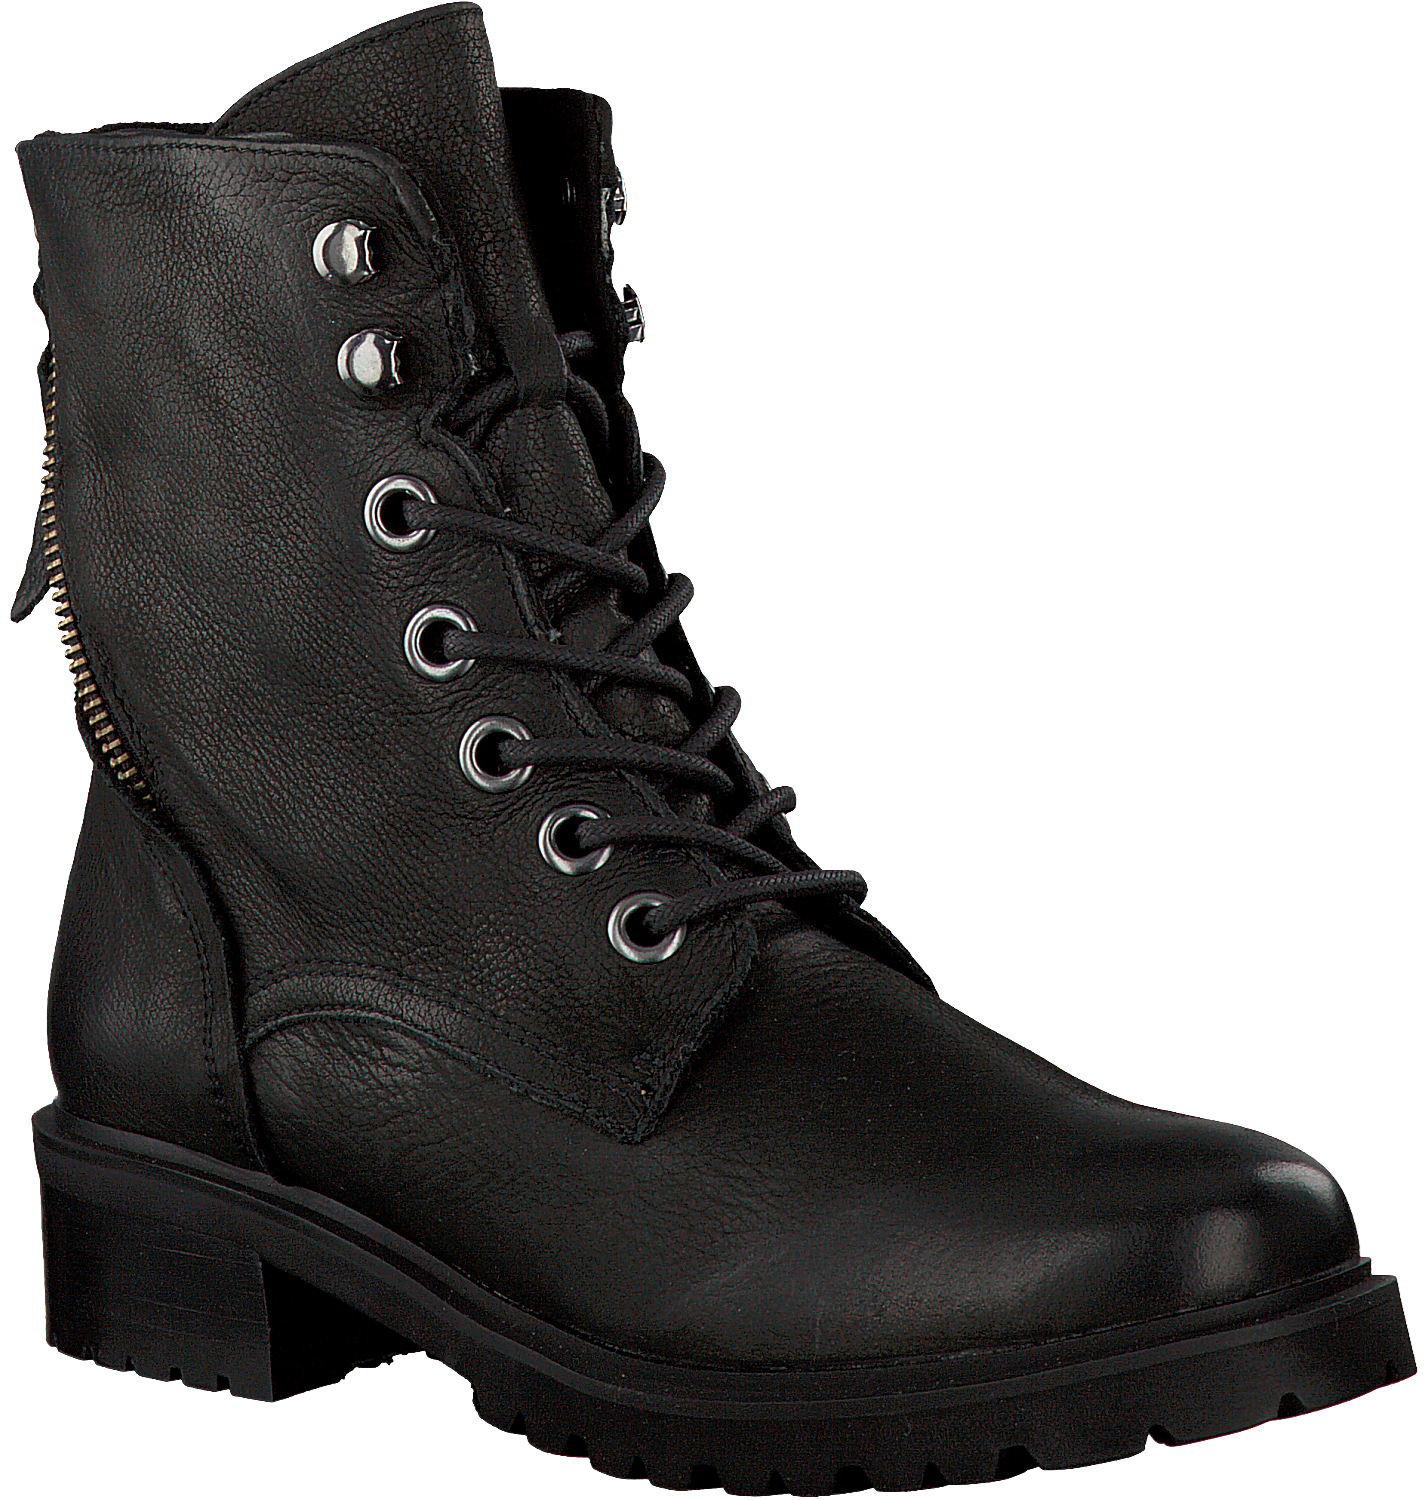 Bottines Lacets Noir Omoda Spm En 21978029 be À m8OPv0Nwyn